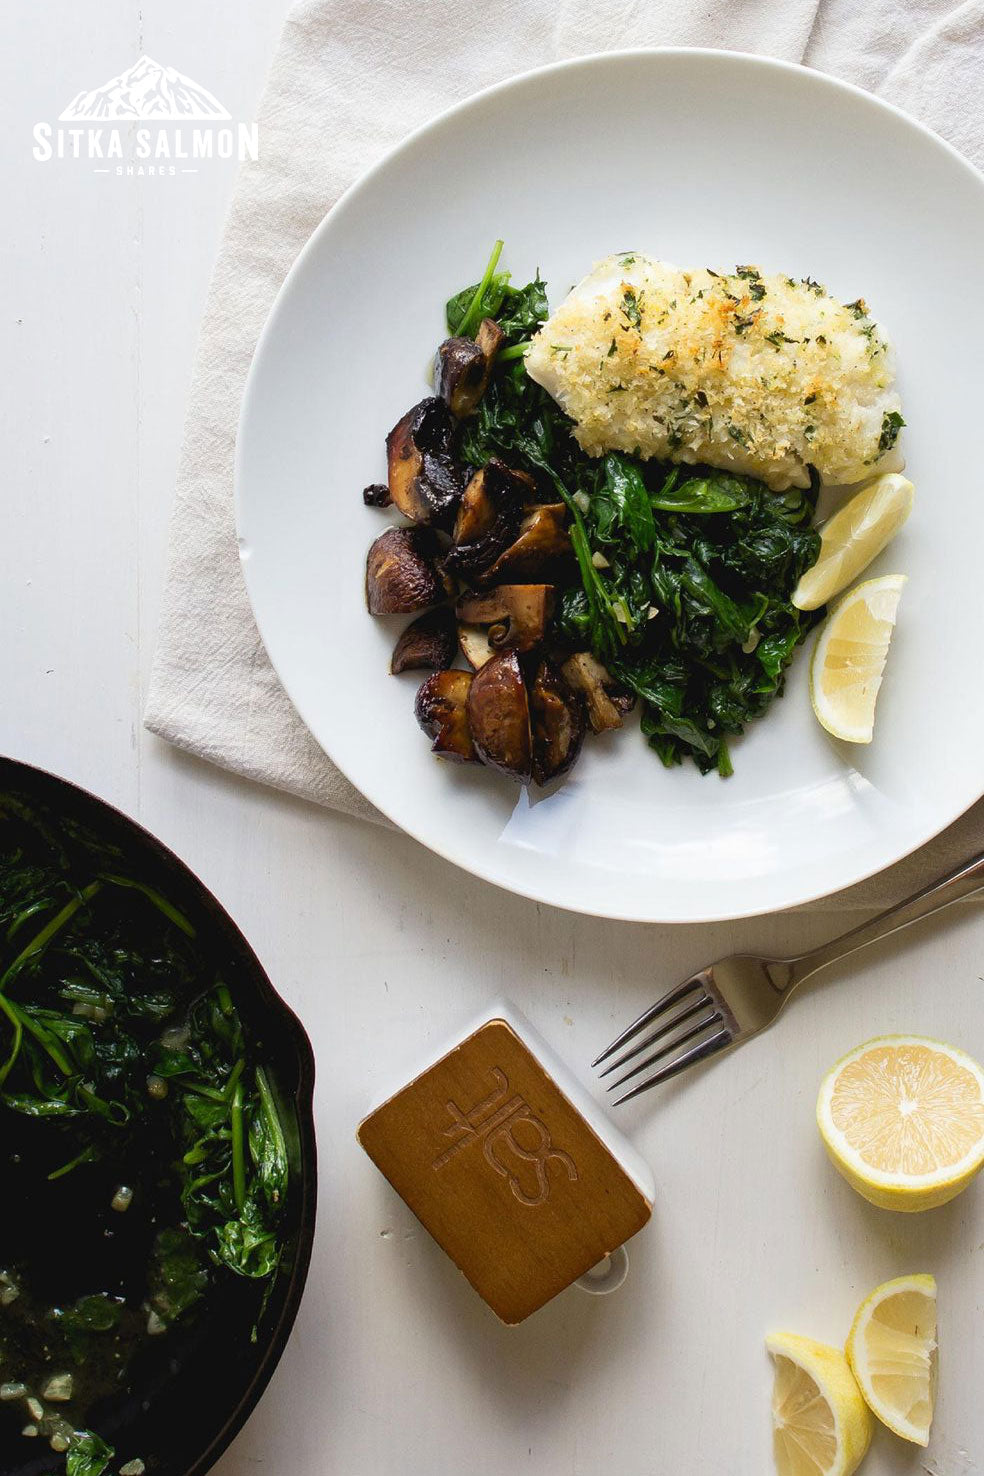 Panko-Crusted Pacific Cod with Spinach & Mushrooms Recipe | Sitka Salmon Shares